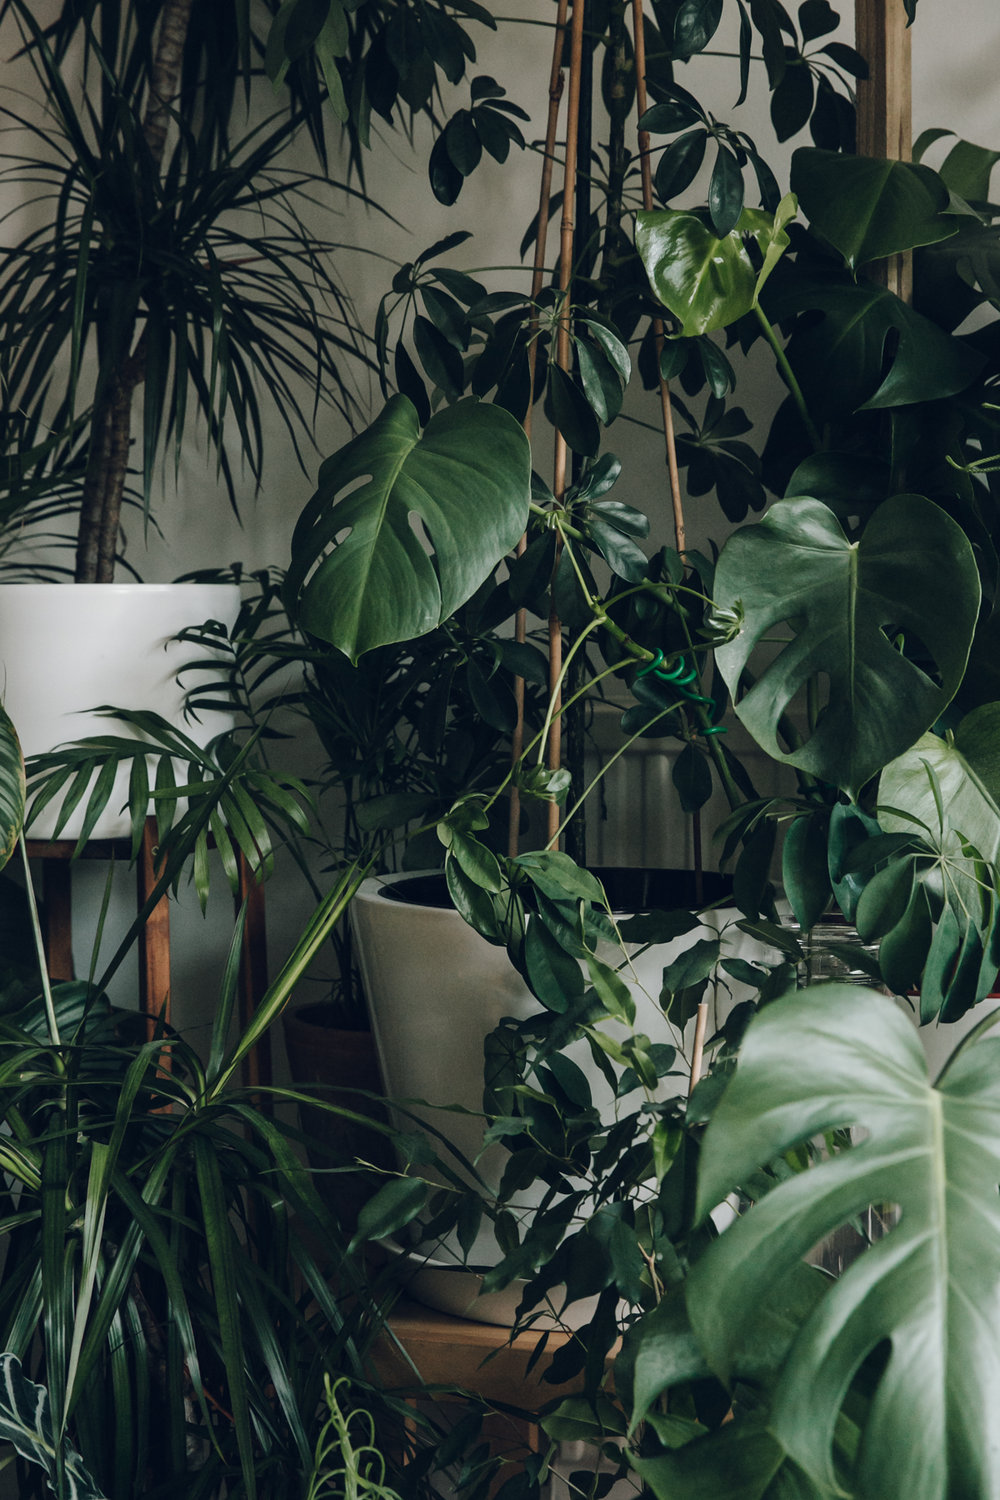 An indoor jungle.